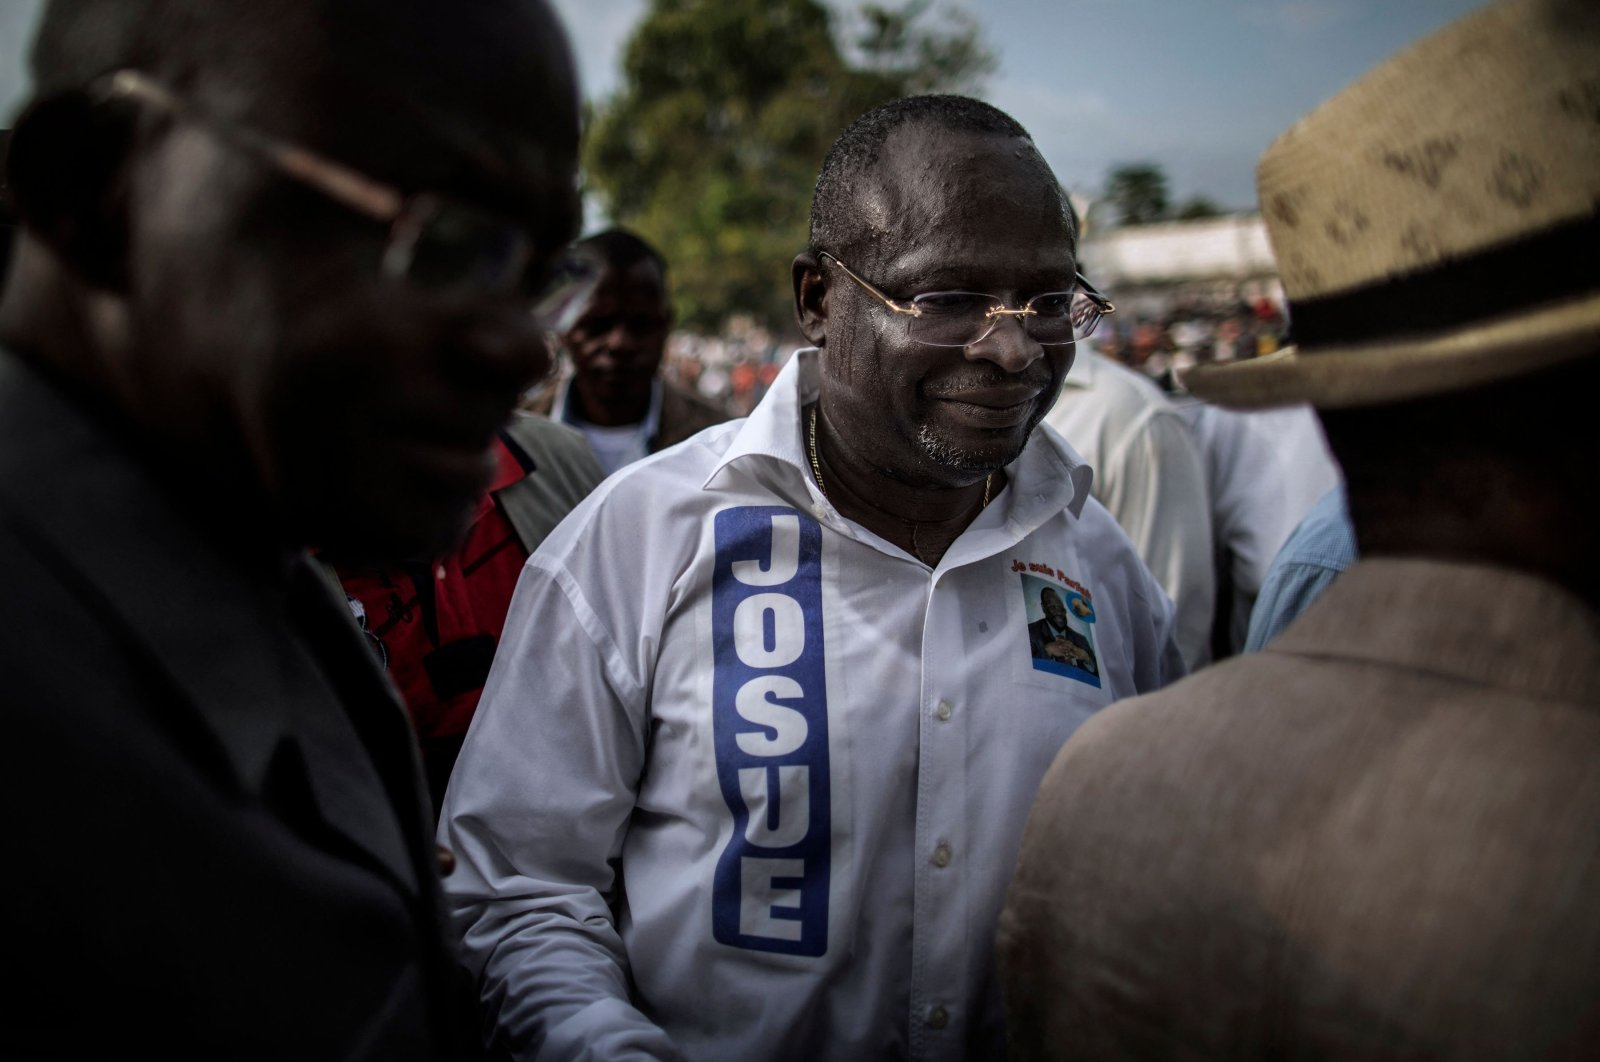 Interim President of the Congolese Movement for Democracy and Integral Development (MCDDI) Guy Brice Parfait Kolelas leaves the stage after addressing his supporters in Brazzaville, Republic of Congo, March 17, 2016. (AFP Photo)